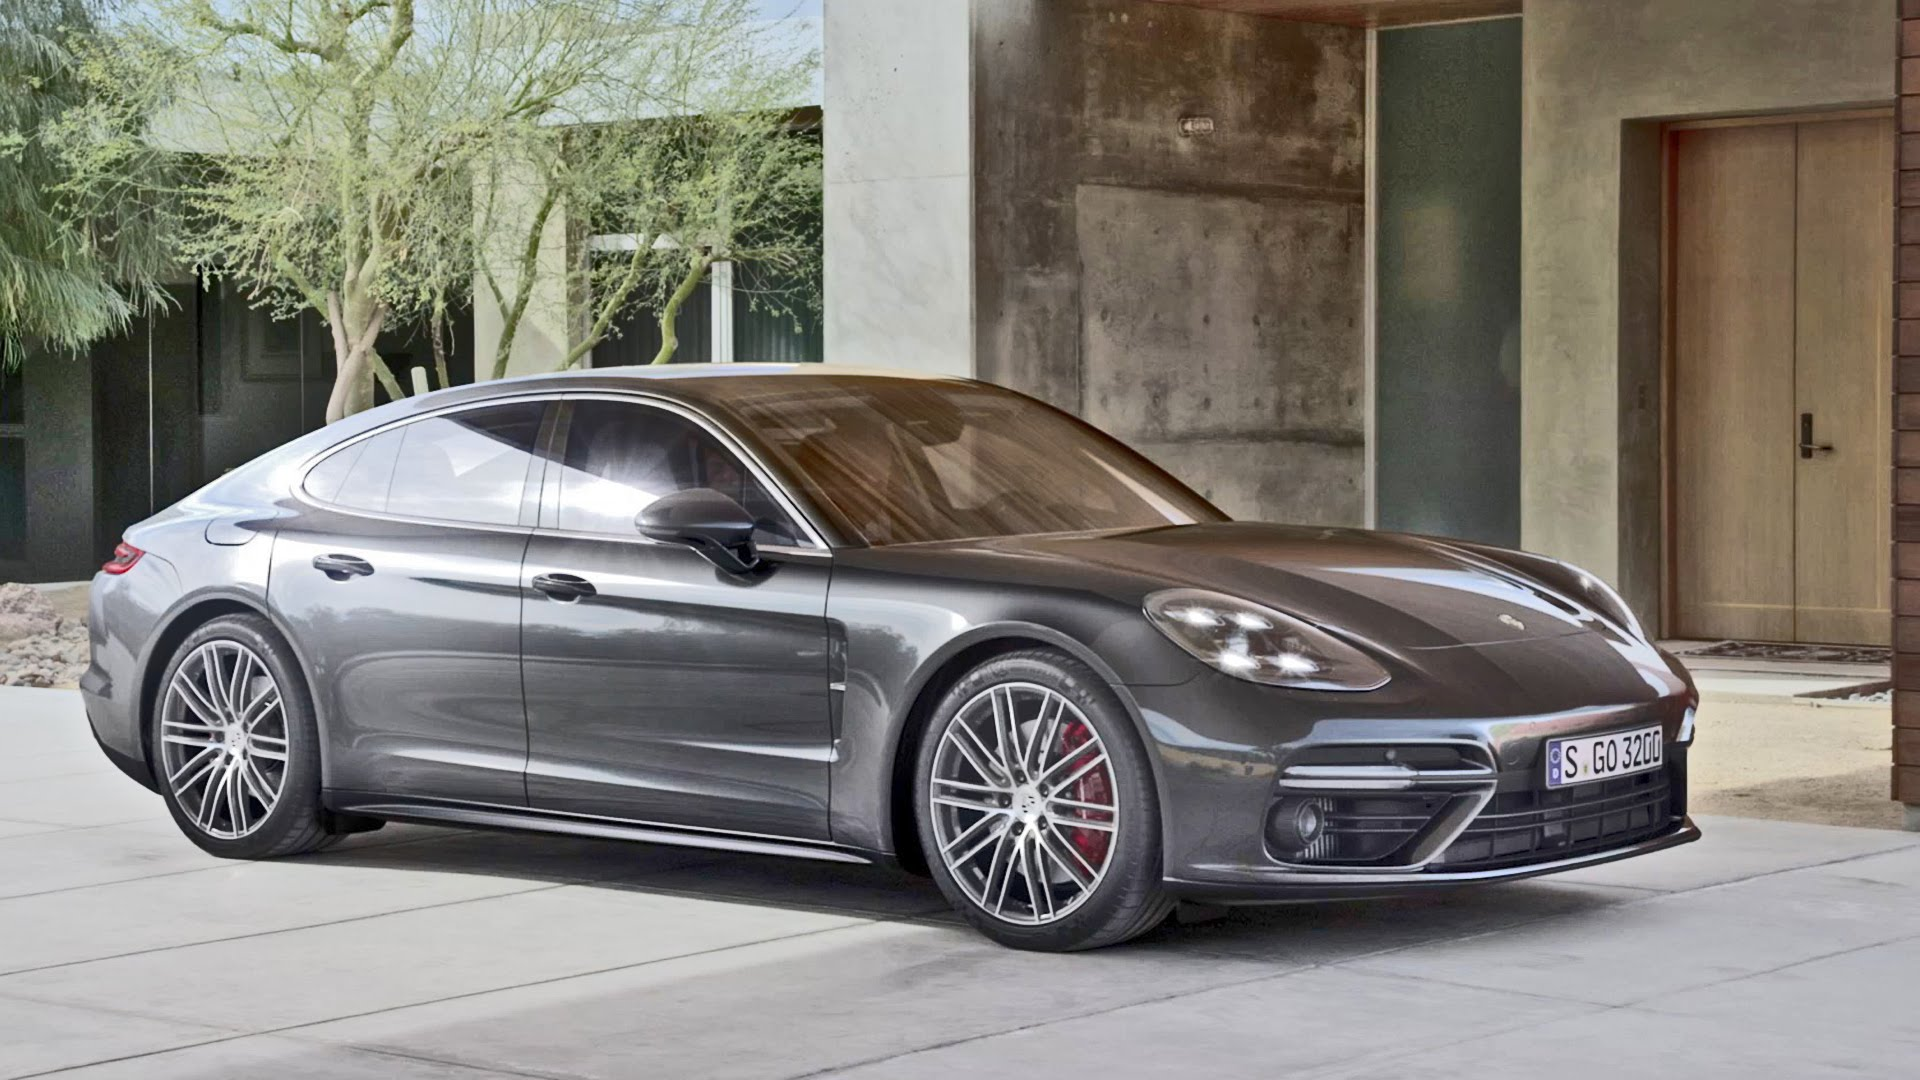 Porsche Panamera 2017 Review Tantalising Tech Is Only Half The Treat Gearopen